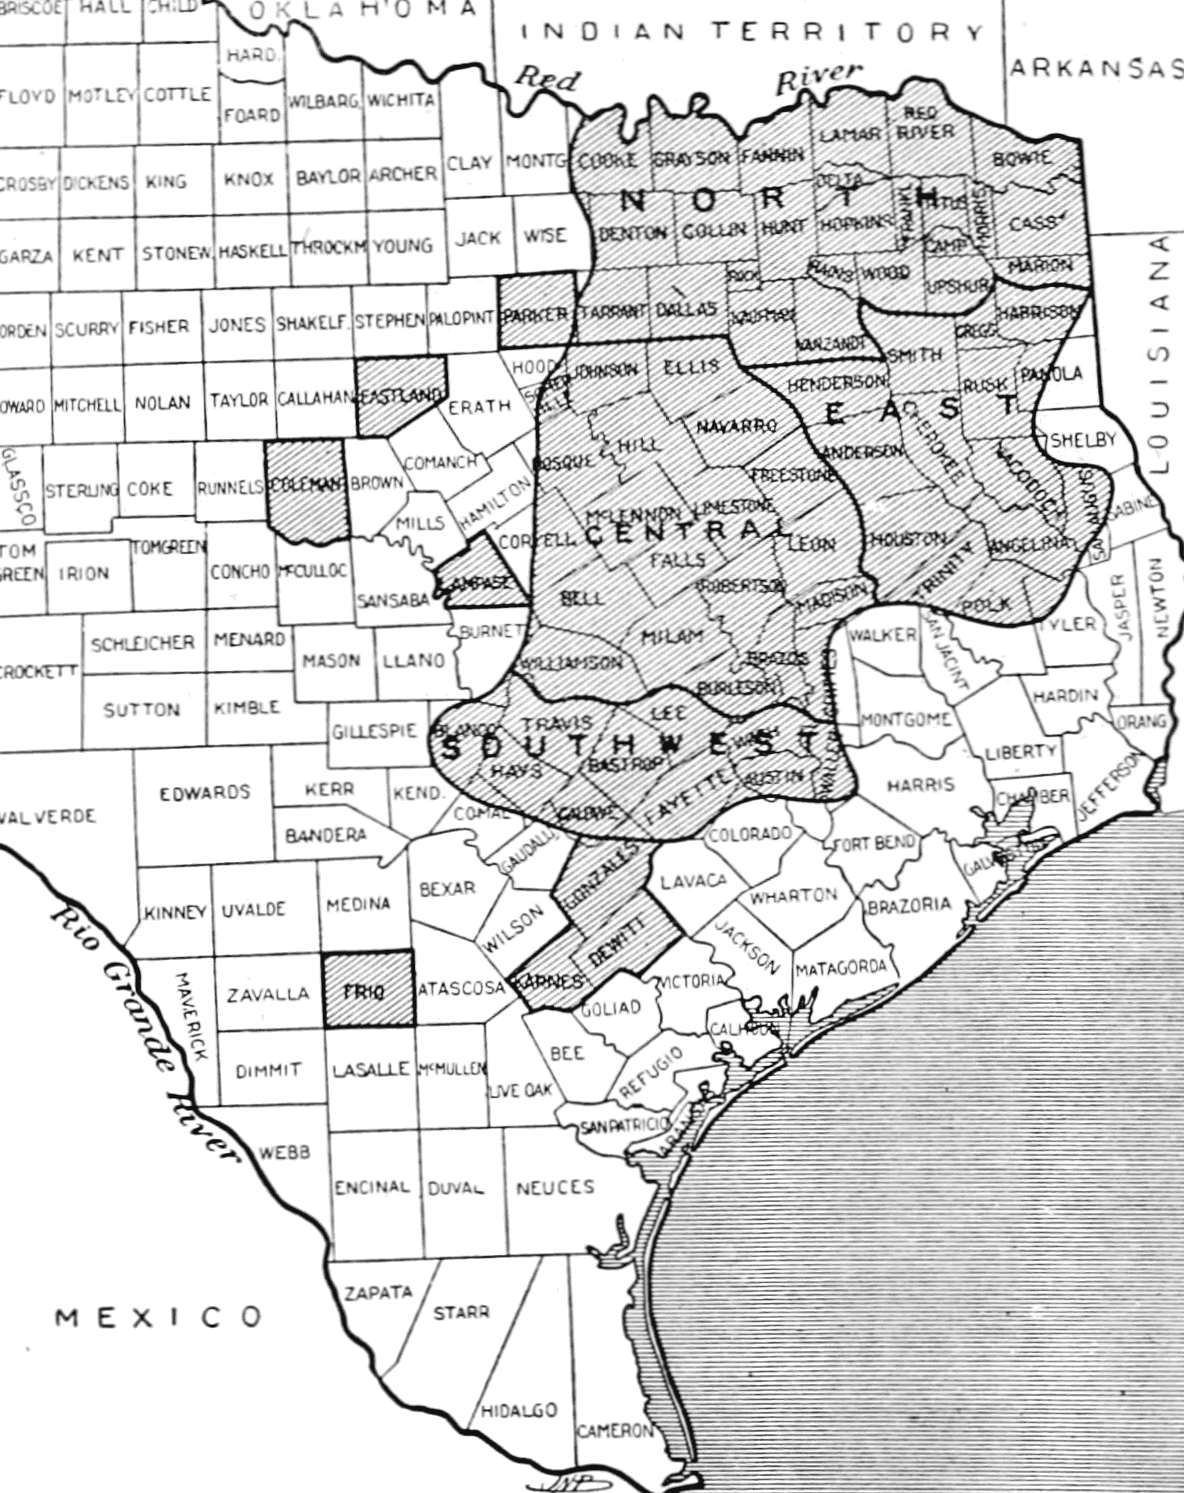 PSM V65 D194 Texas regions ravaged by the bollworm in 1903.png